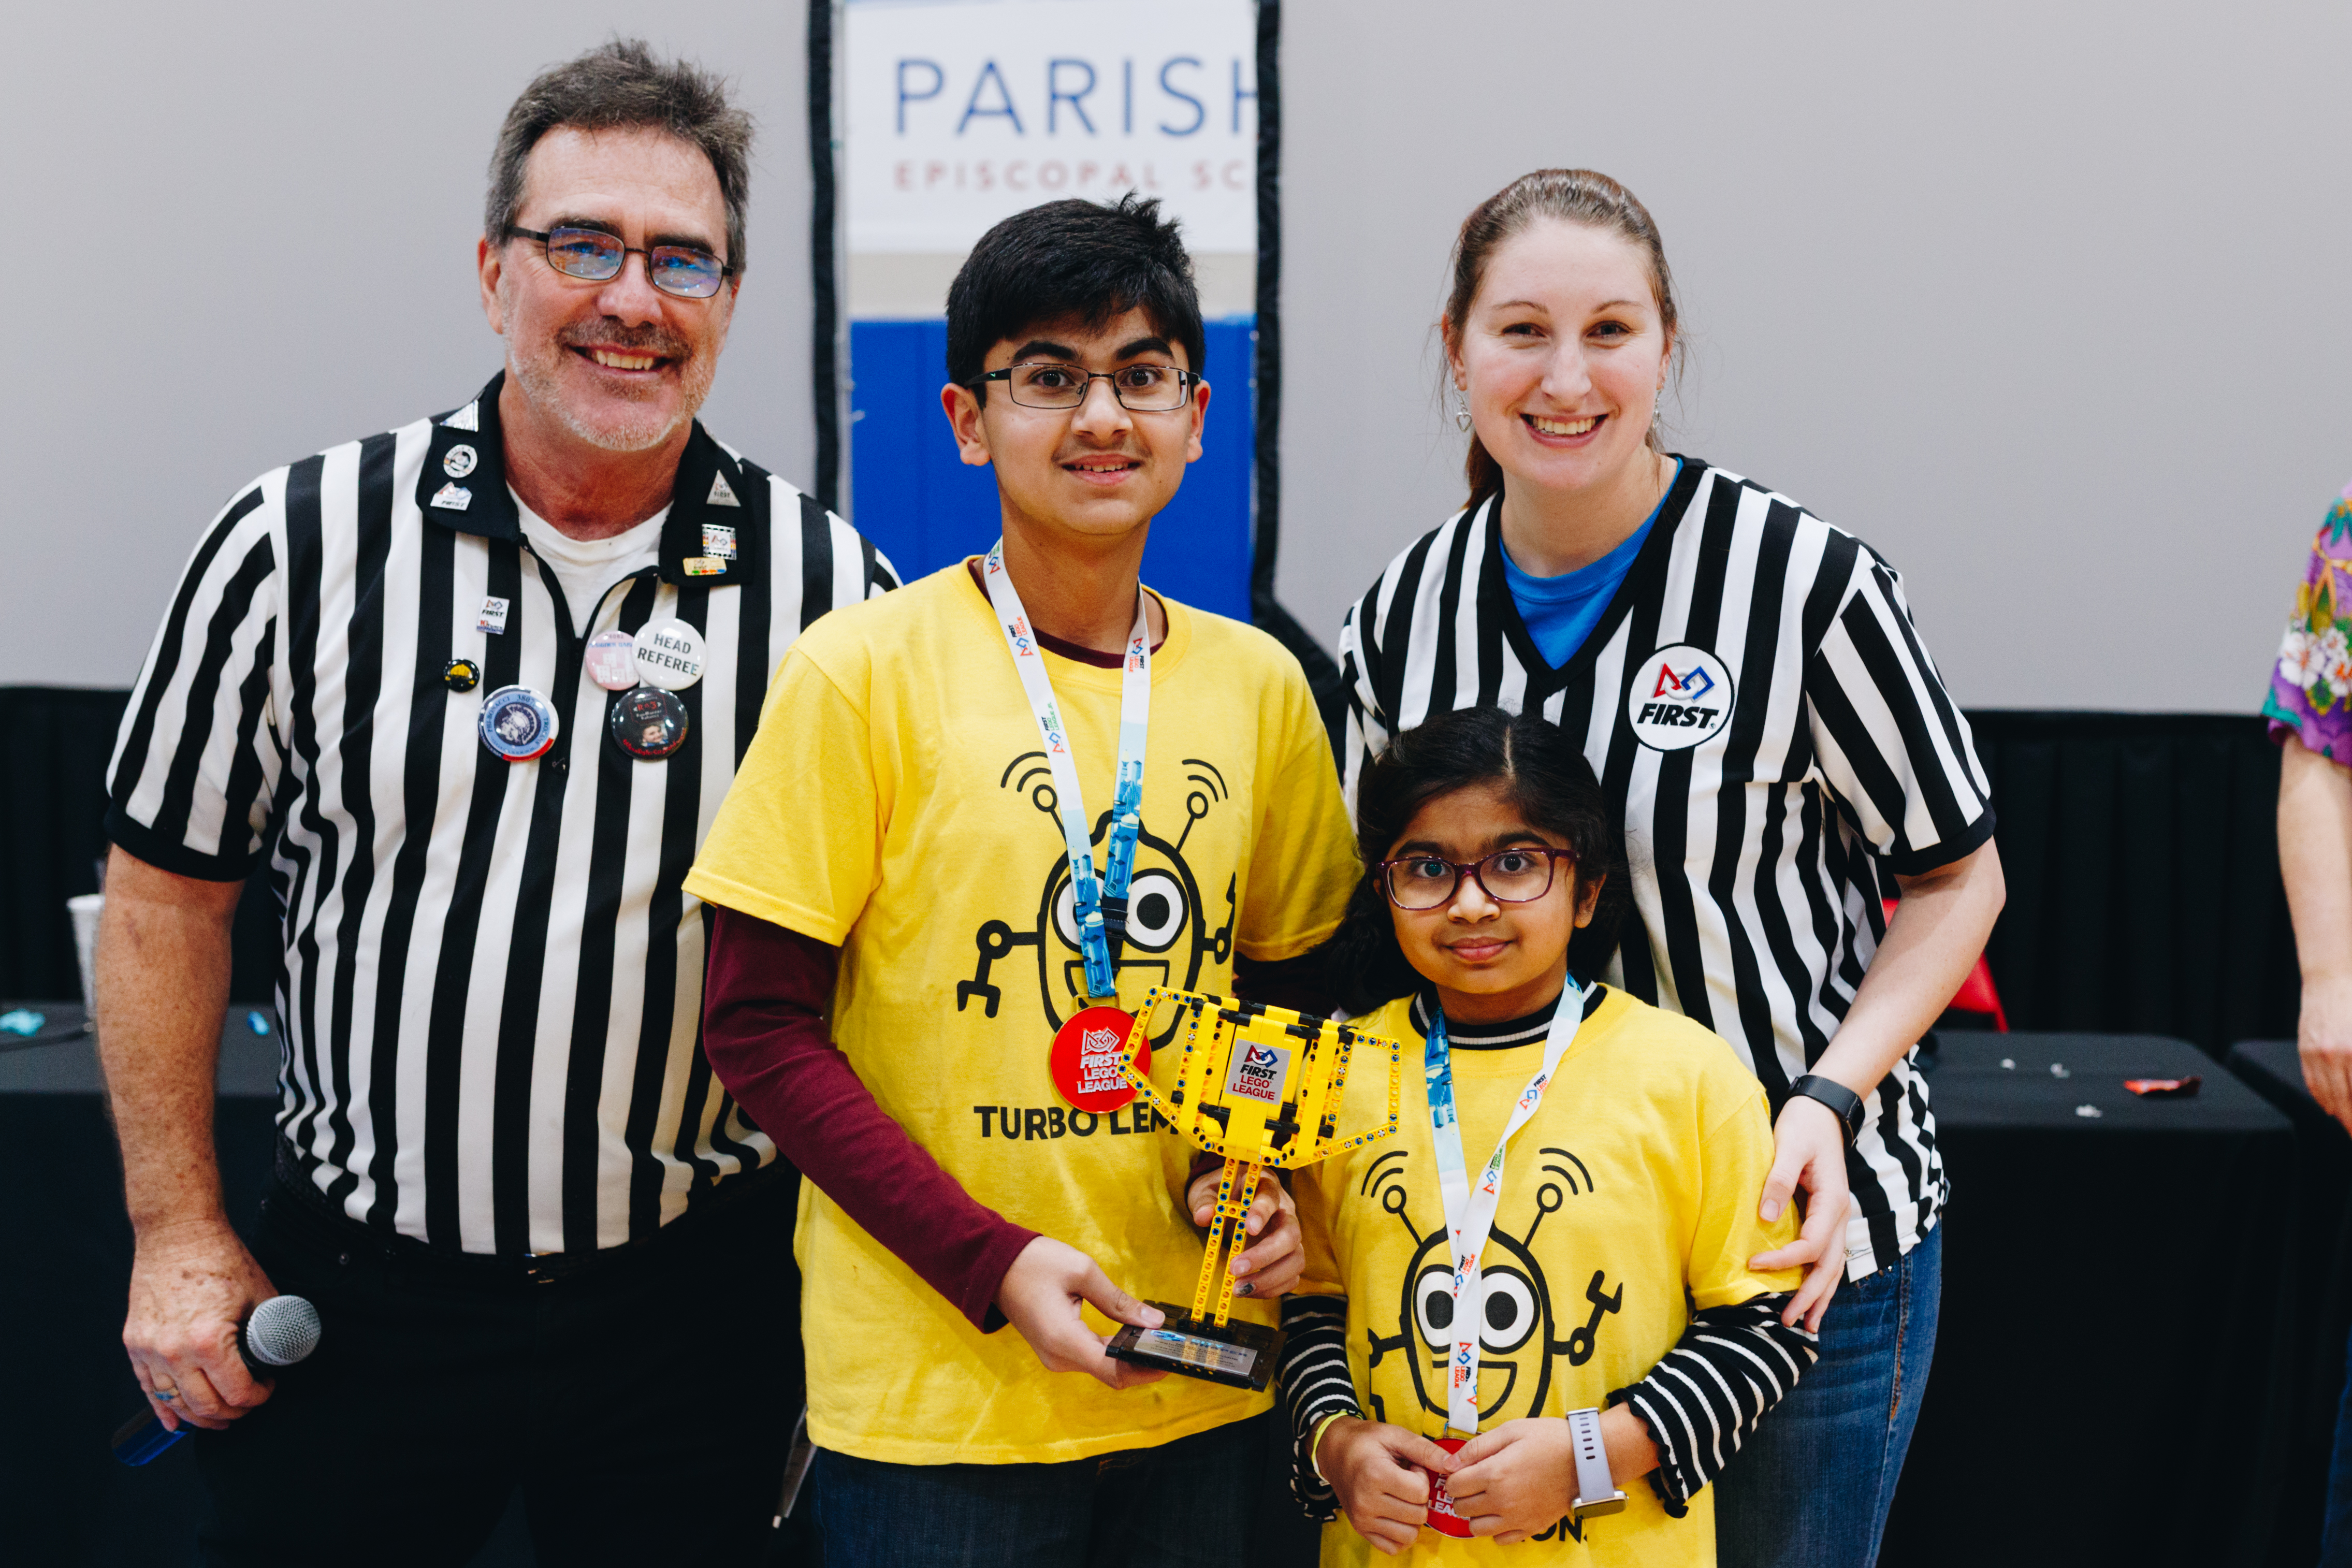 600 North Texas youth came ready to compete at the 12th-annual North Texas FIRST LEGO League (FLL) Regional Championship Robotics Tournament held at Parish Episcopal School and Community Center